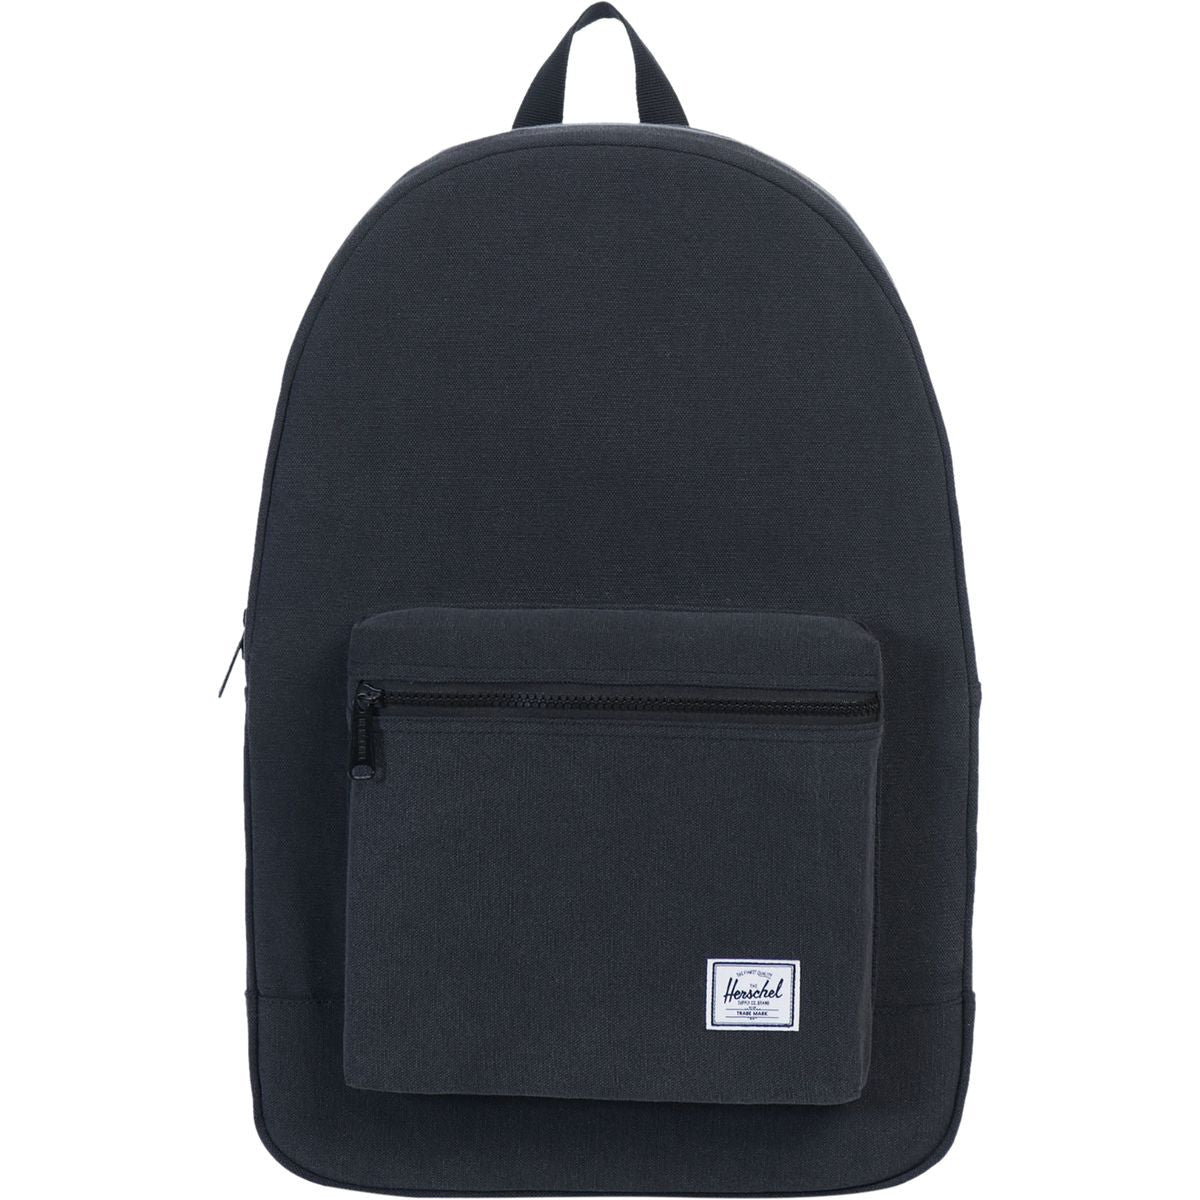 Herschel Supply Co. - Packable Daypack, Black Canvas - The Giant Peach - 1